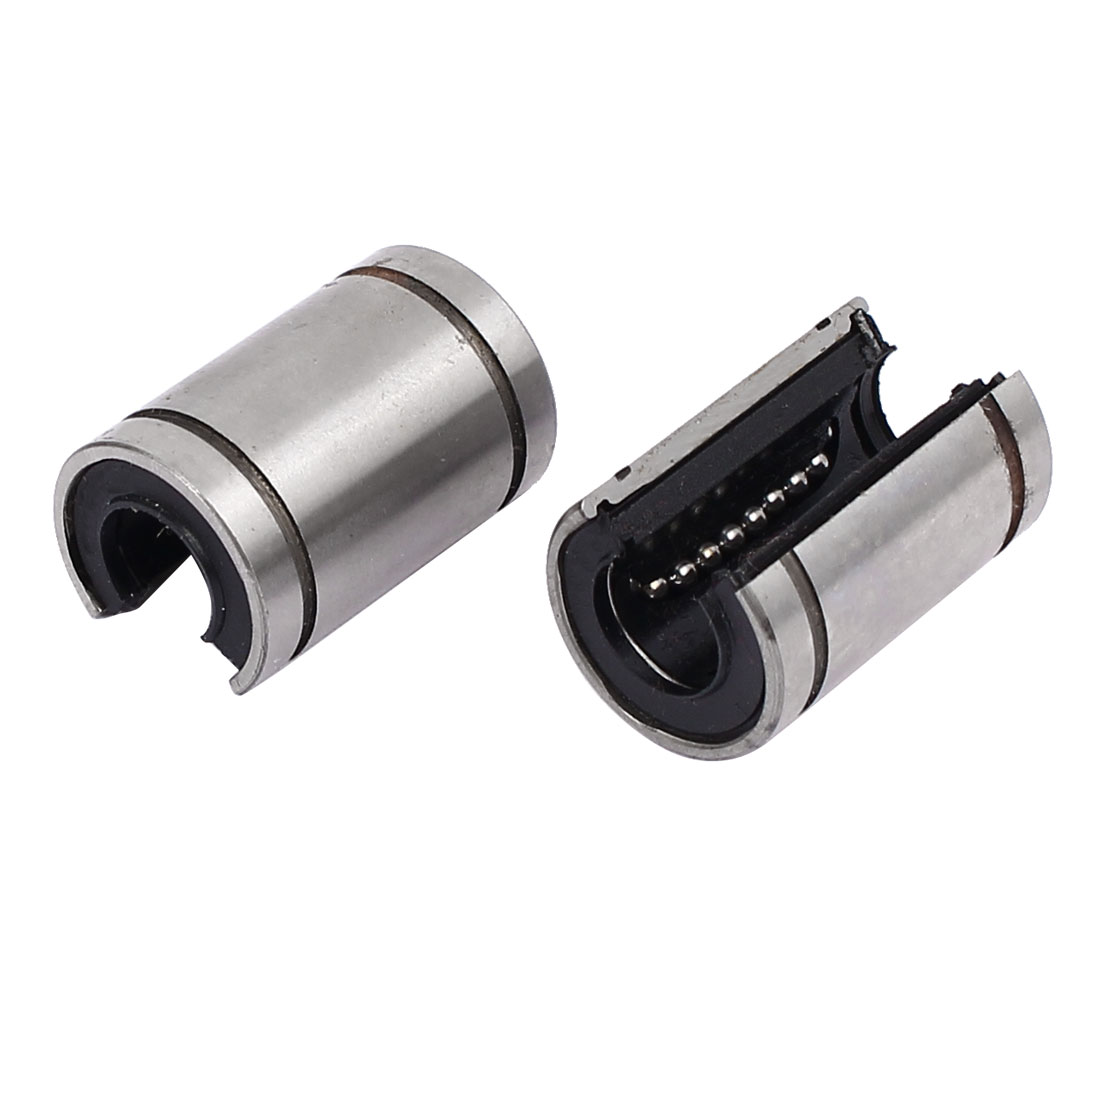 LM10UU 29mm Length Linear Motion Bushing Ball Bearing Silver Tone 2pcs